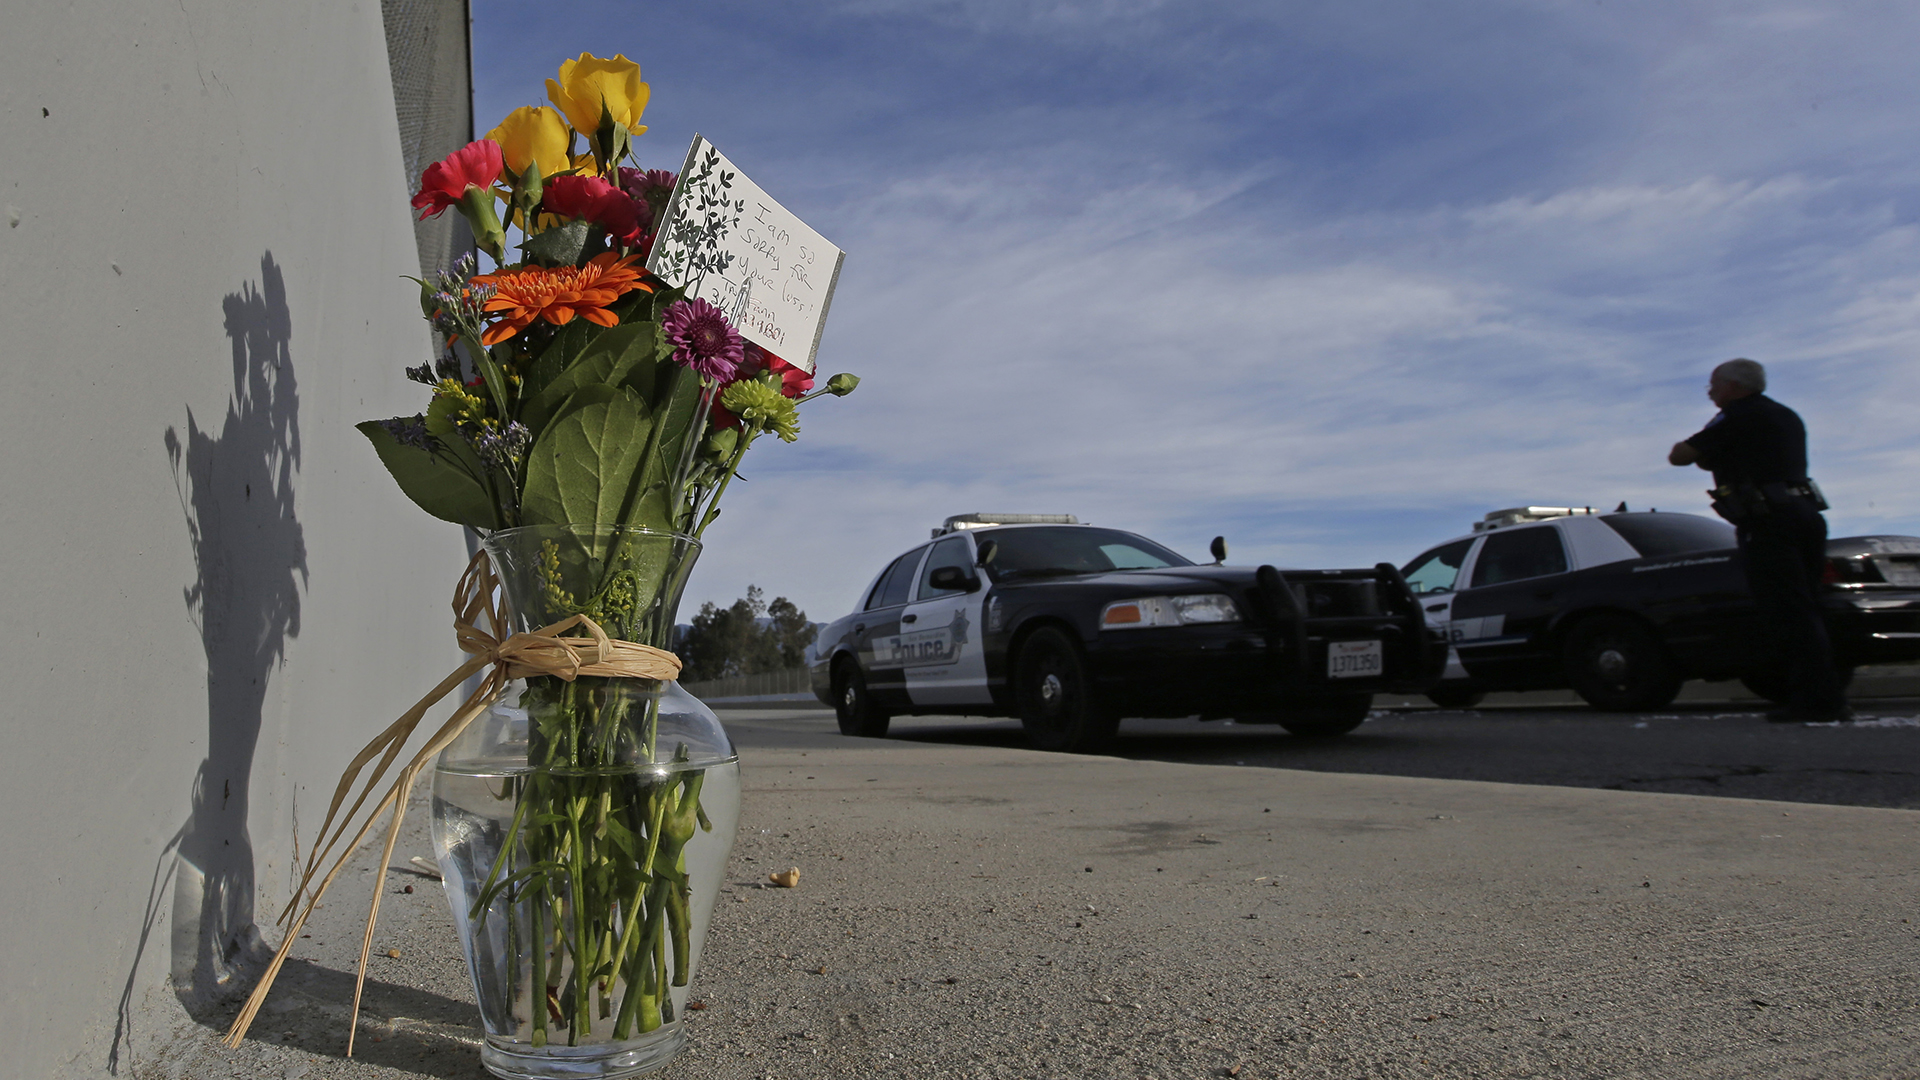 Staggering Stats: There Have Been More Mass Shootings Than Days This Year